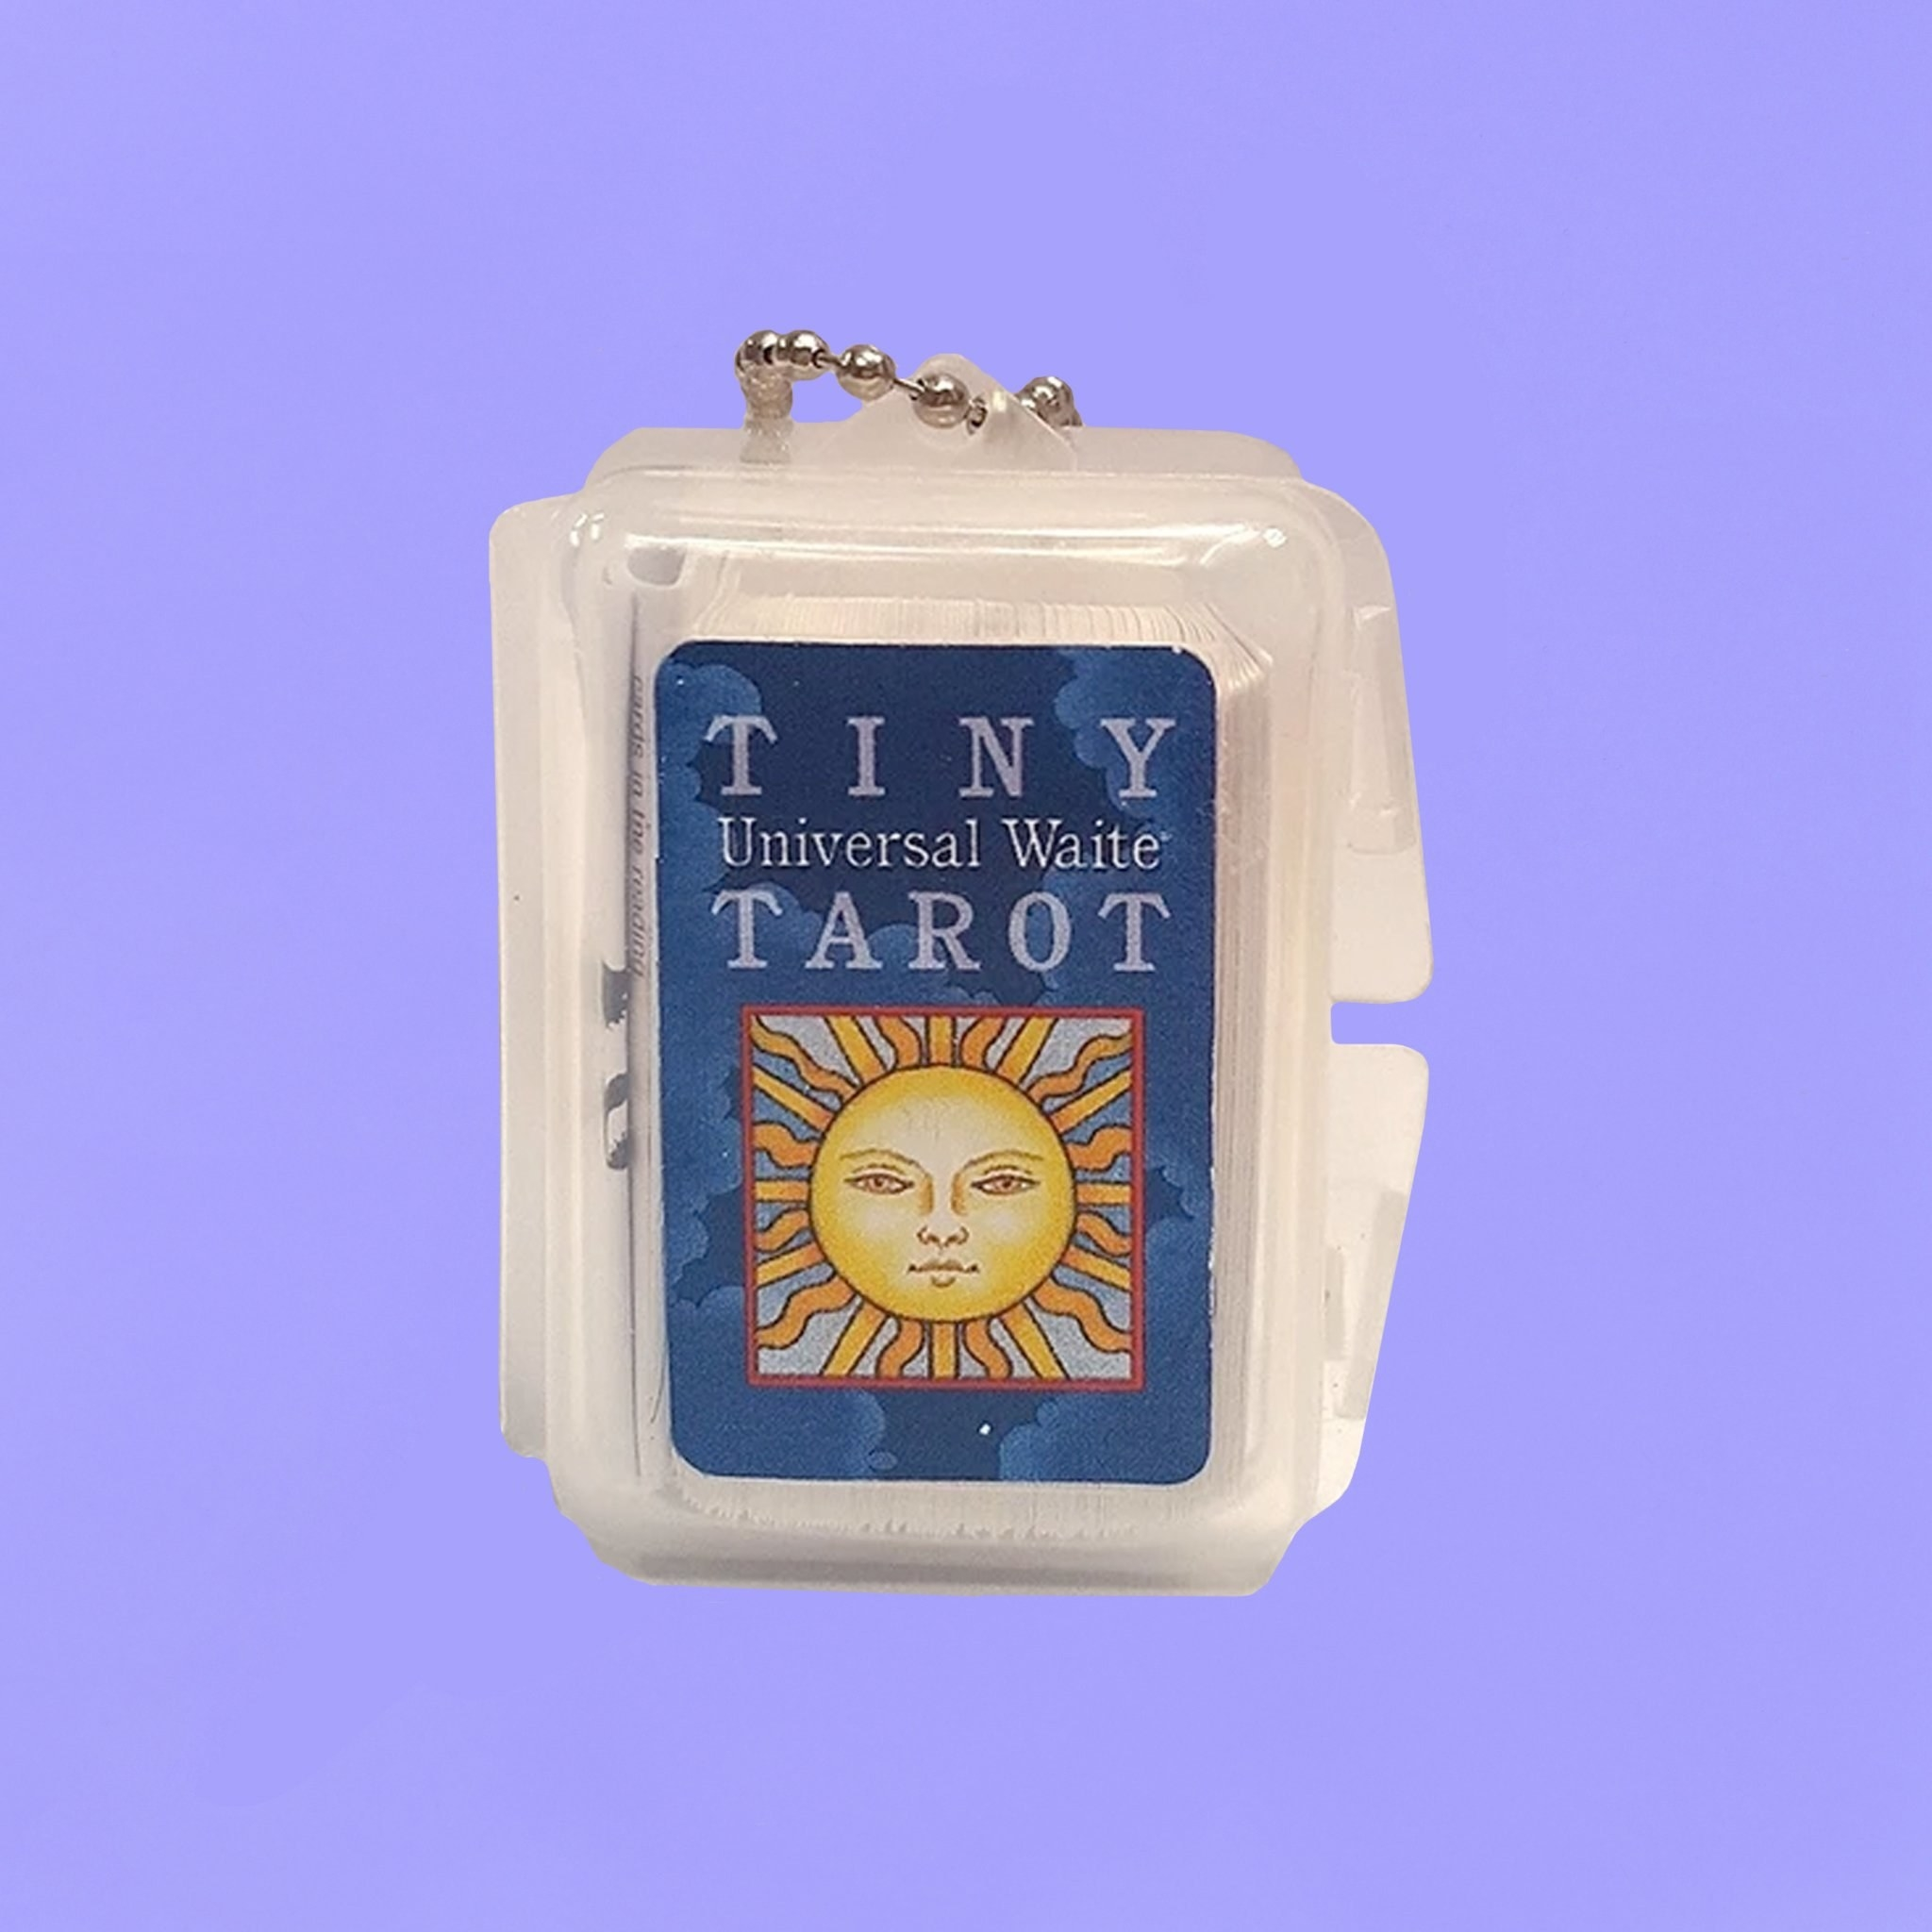 The tiny taro cards in their container which is attached to a keychain